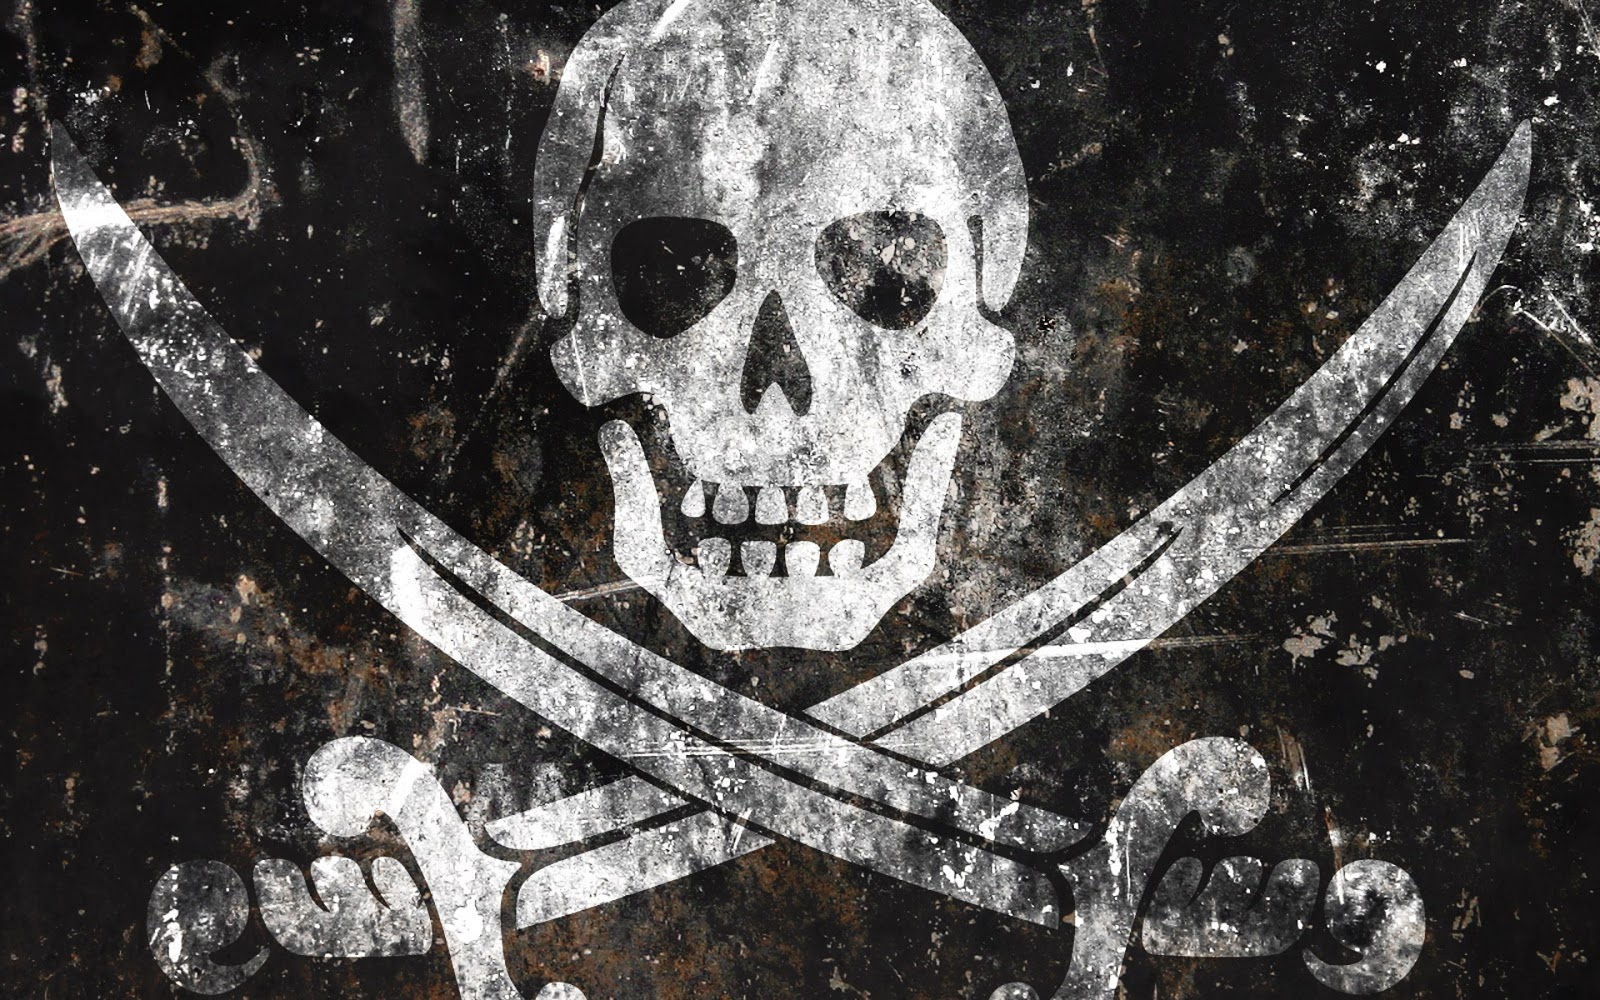 http://3.bp.blogspot.com/-4EPJZRBk2tc/Th4QLTkflMI/AAAAAAAAIO0/aNK3ryylBr4/s1600/pirate-skull-swords-hd-wallpaper.jpg